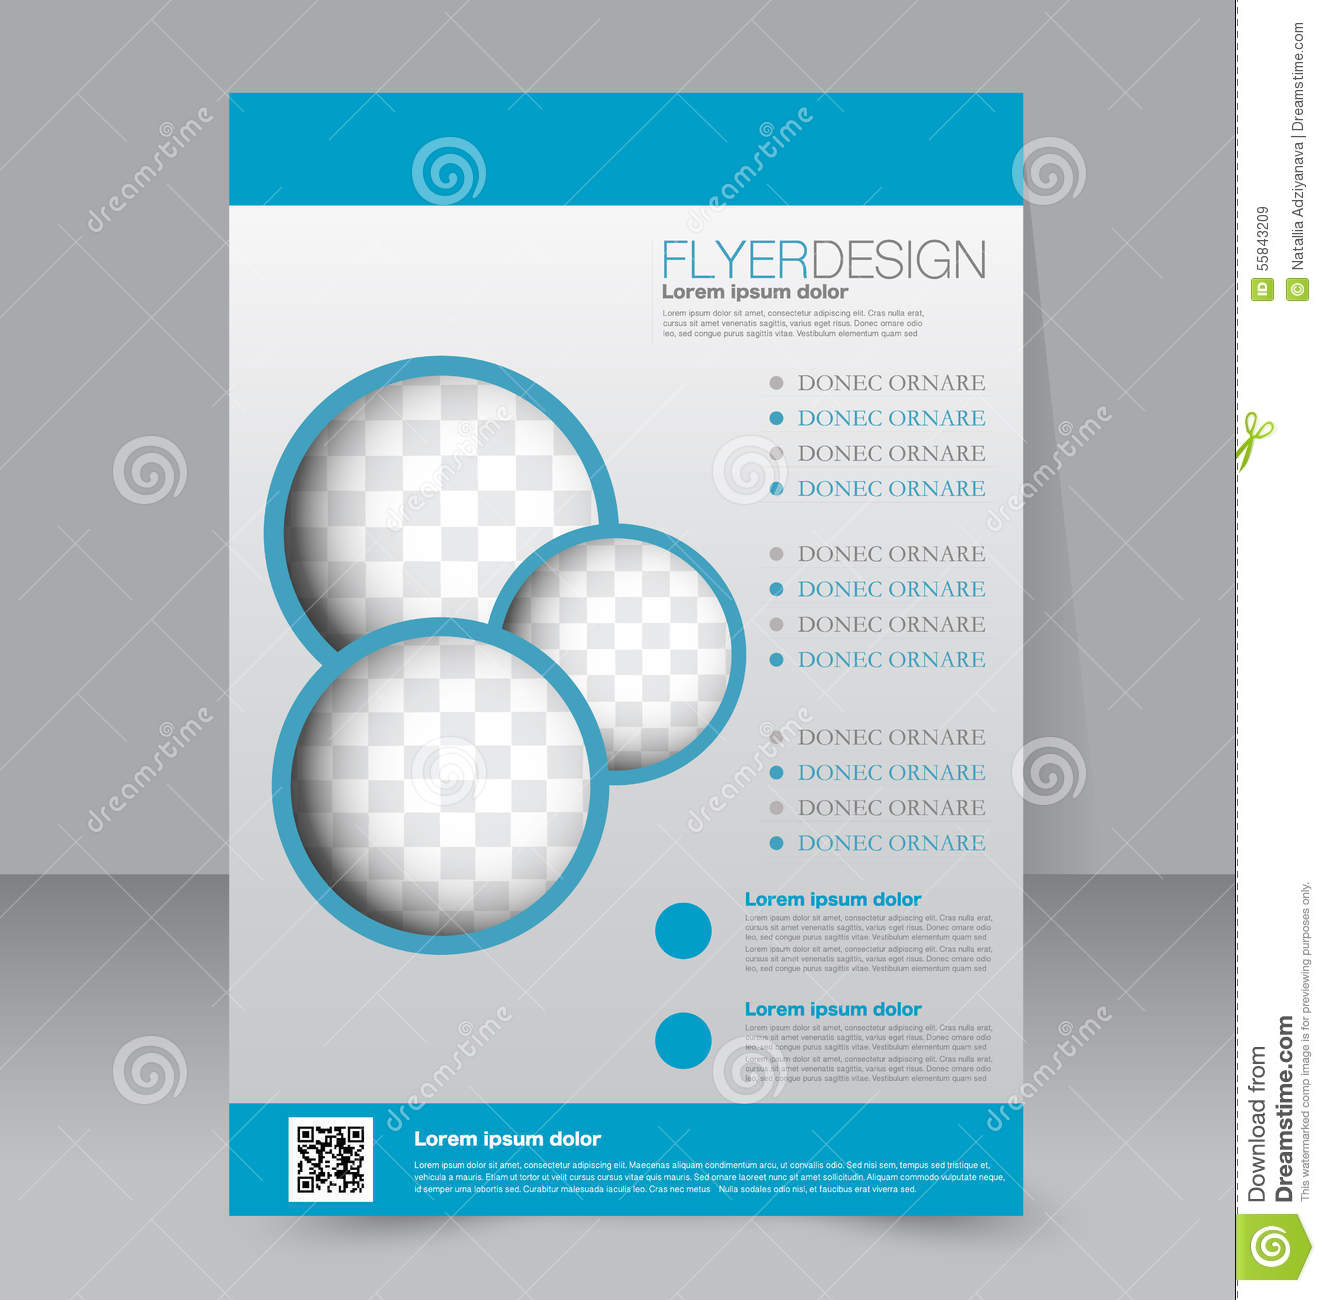 Poster design software free download - Download